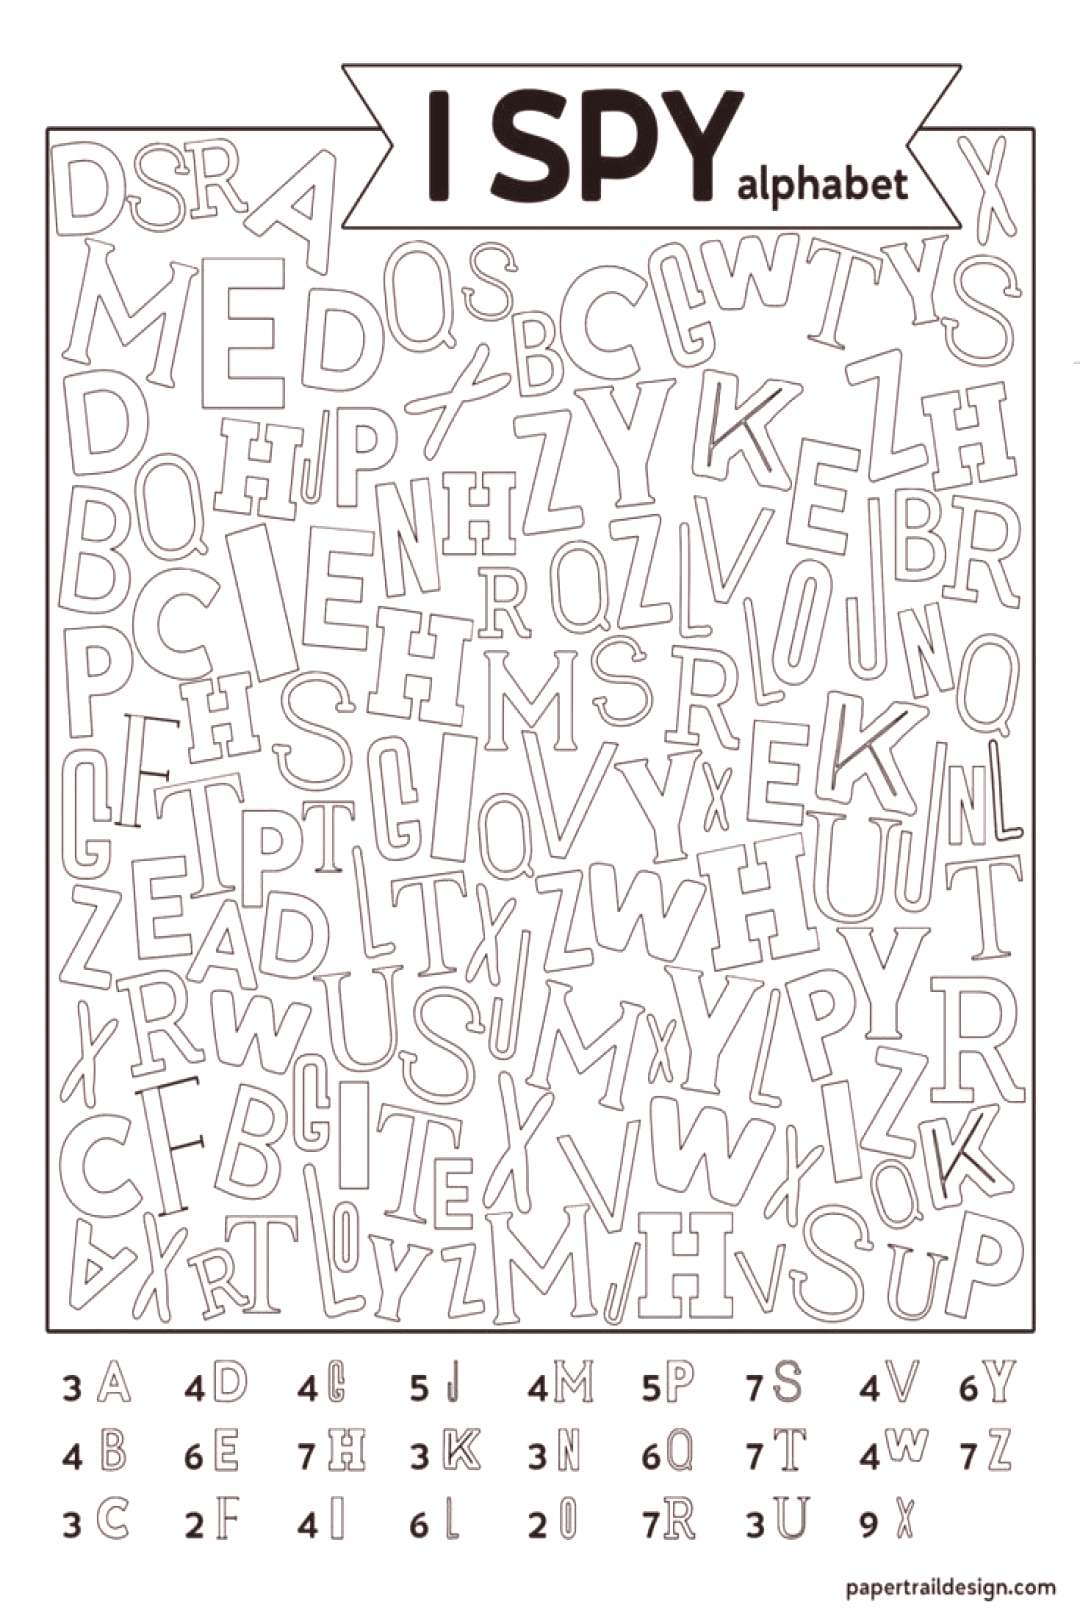 Free Printable Alphabet I Spy Game. Use this boredom buster activity on a rainy day or in the class